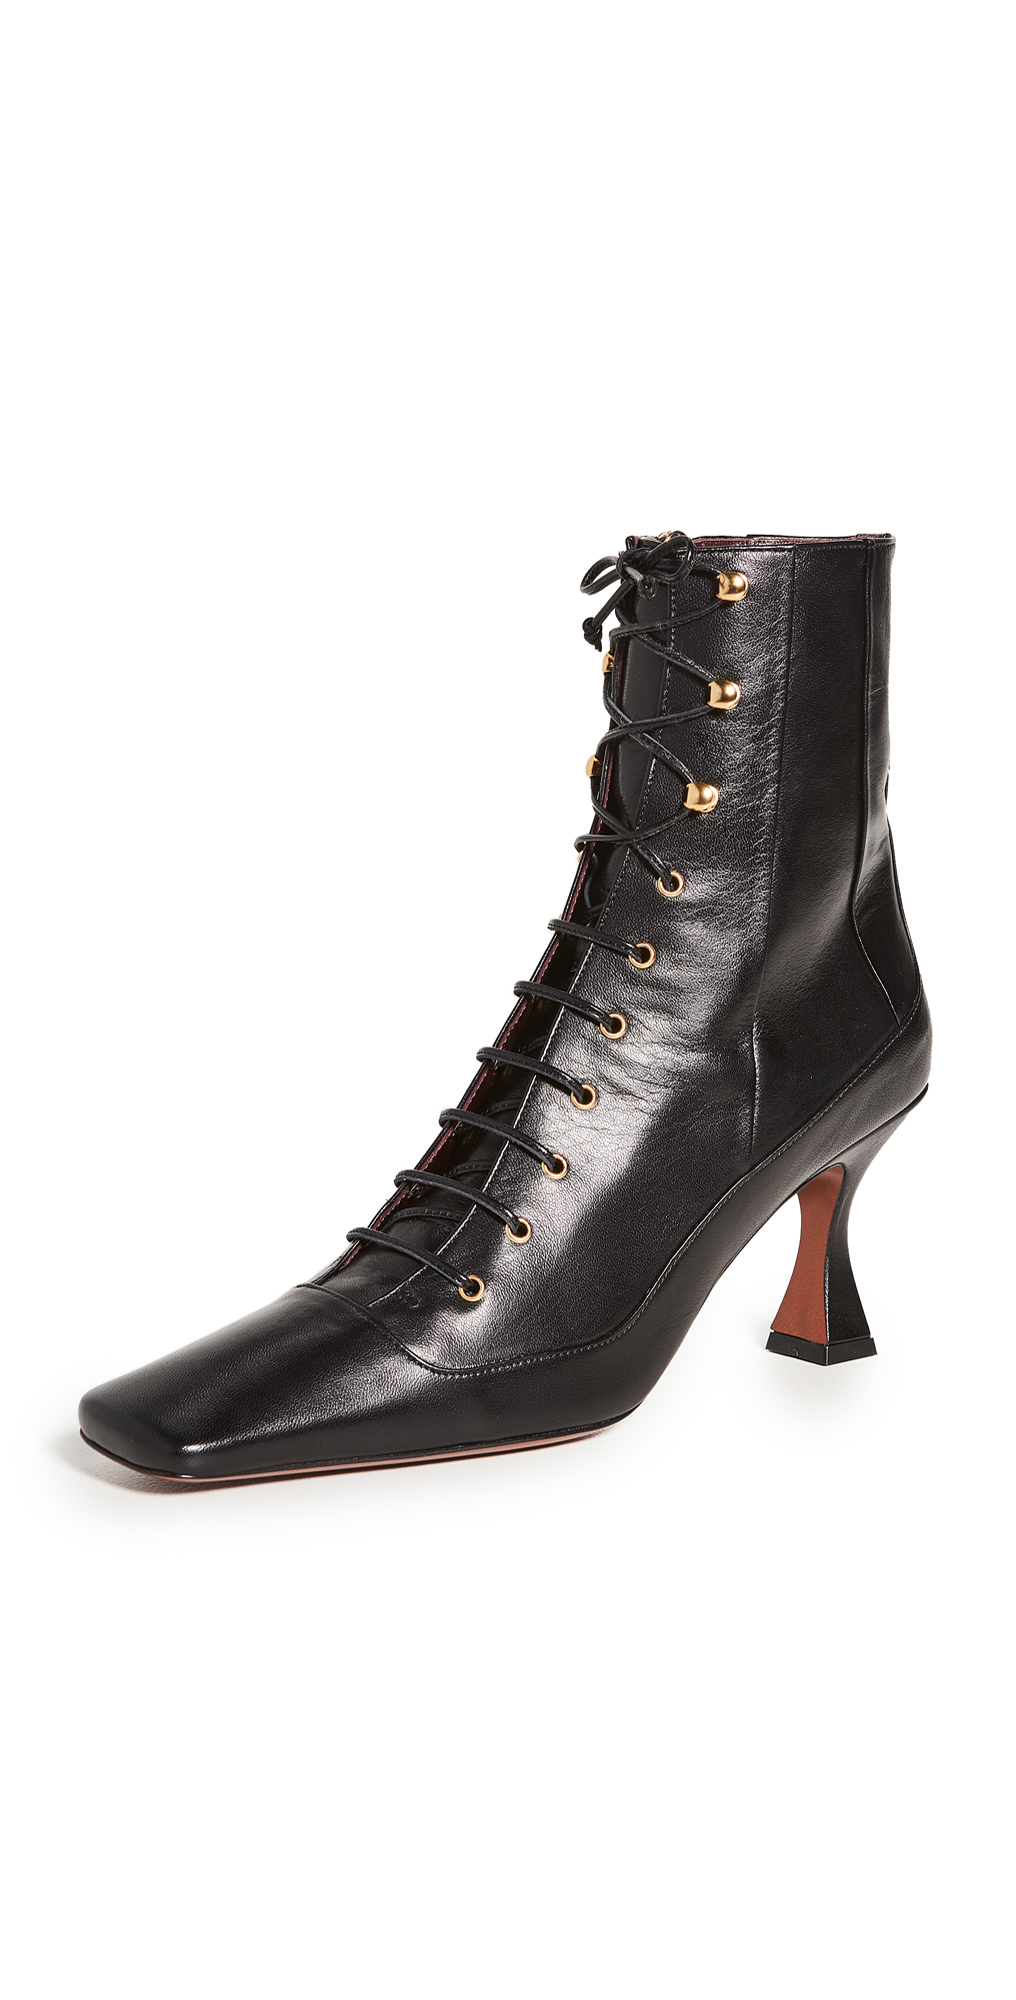 MANU Atelier Lace Up Duck Boots